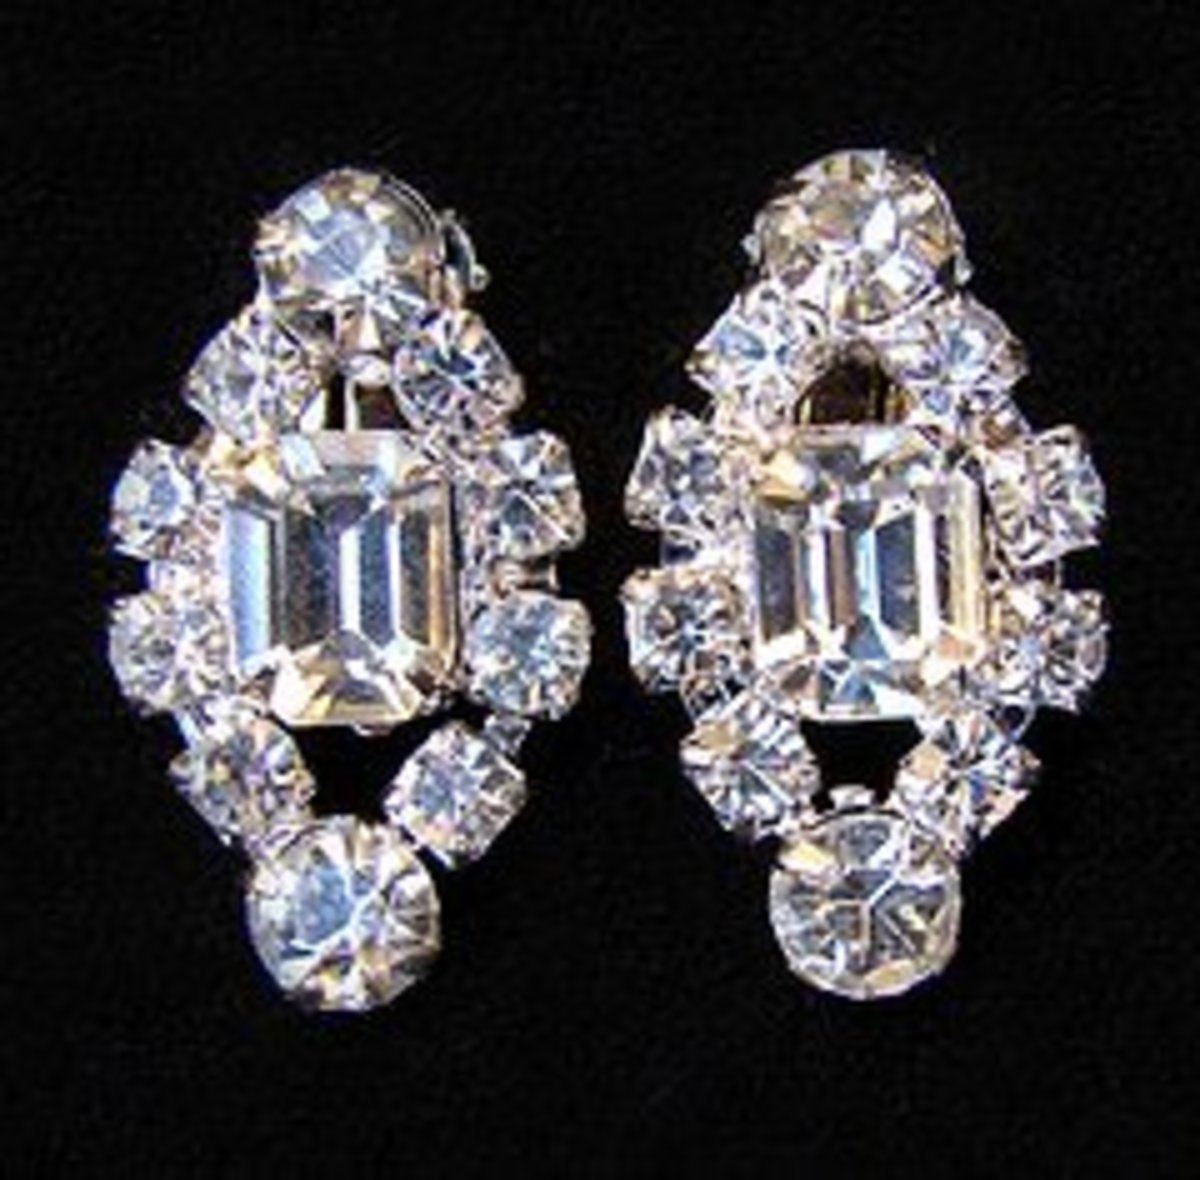 How To Care For And Clean Rhinestone Costume Jewelry